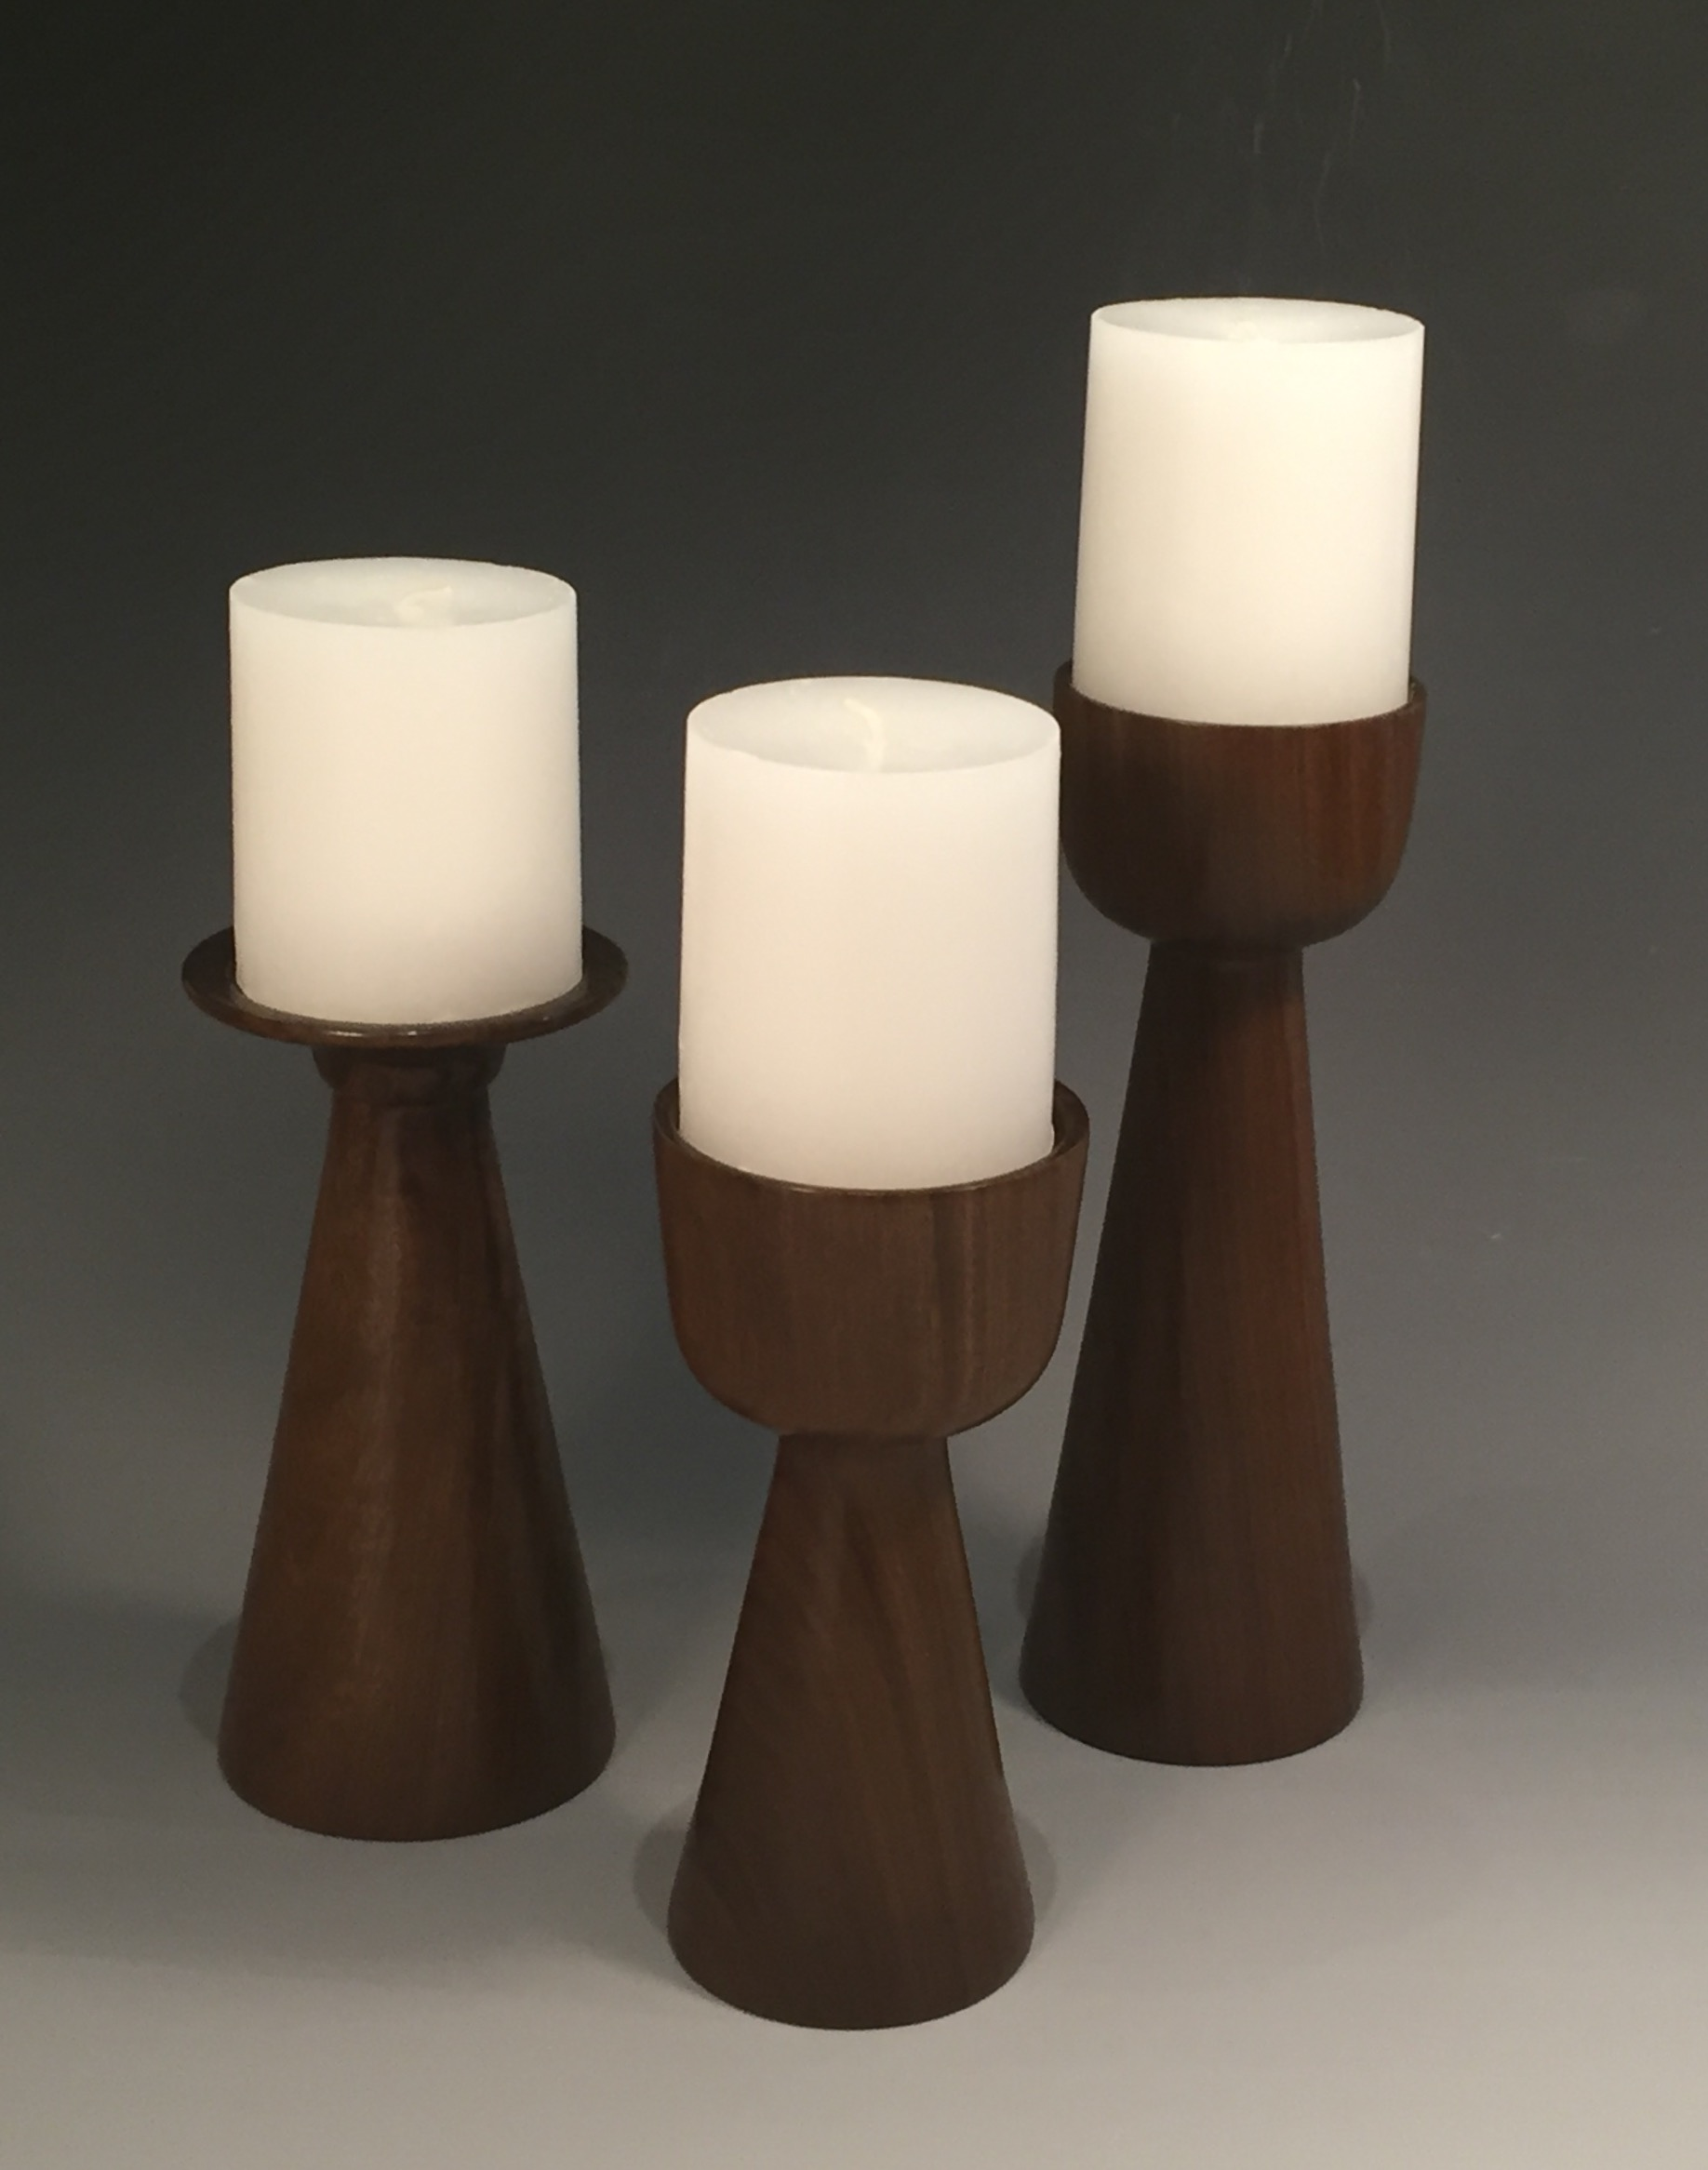 Epo wood candlesticks.